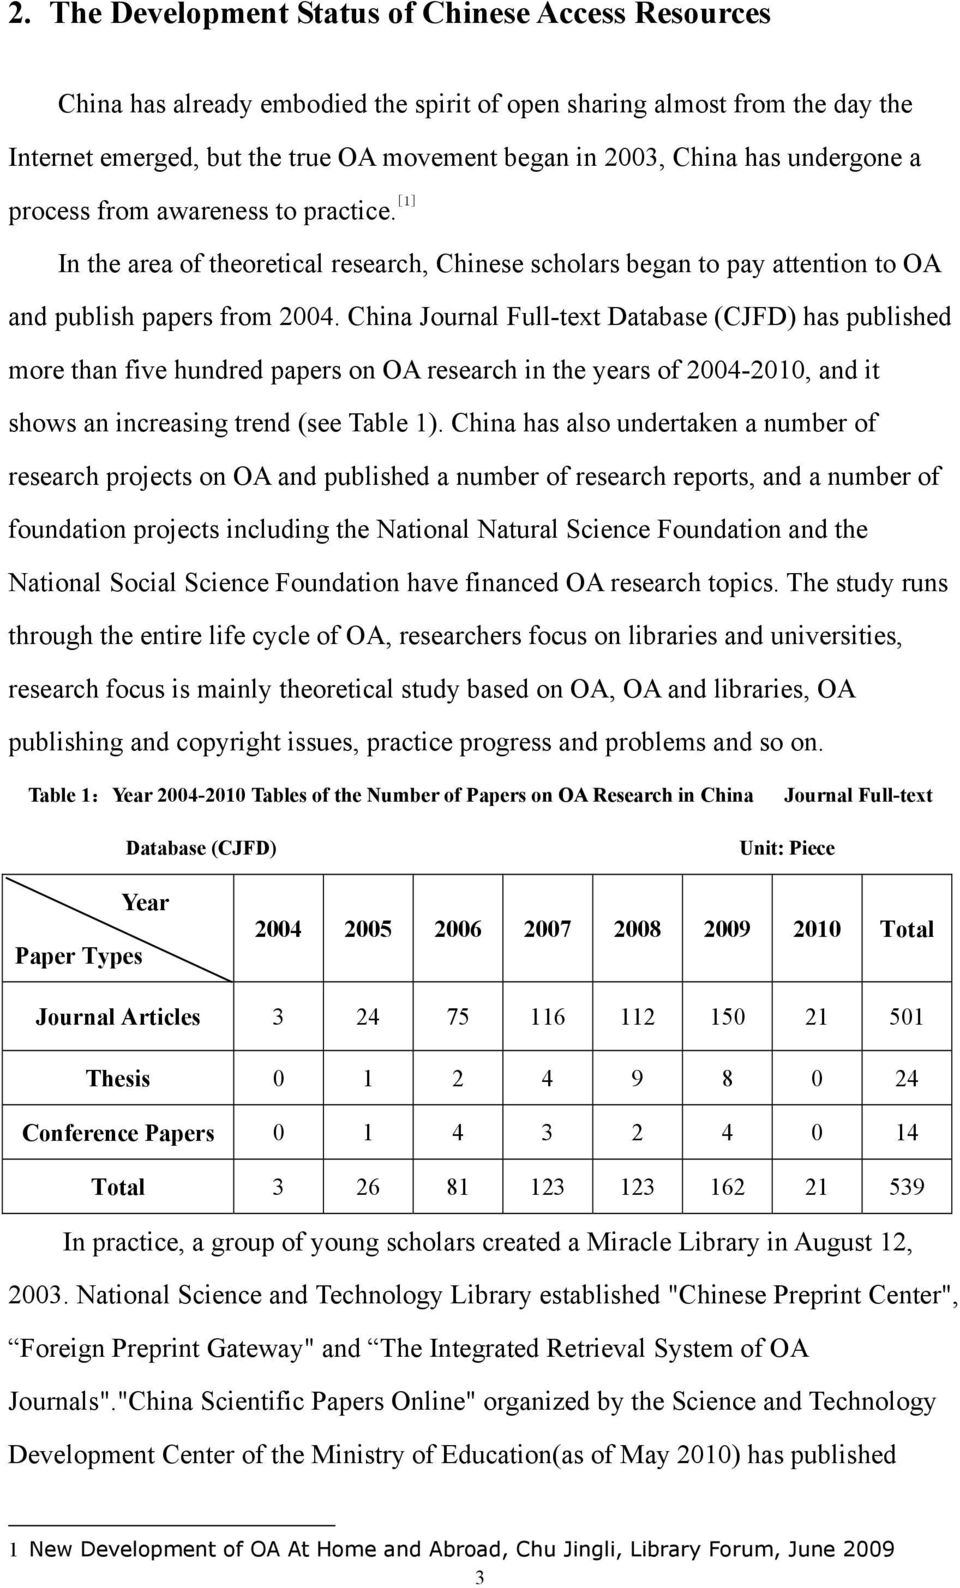 China Journal Full-text Database (CJFD) has published more than five hundred papers on OA research in the years of 2004-2010, and it shows an increasing trend (see Table 1).